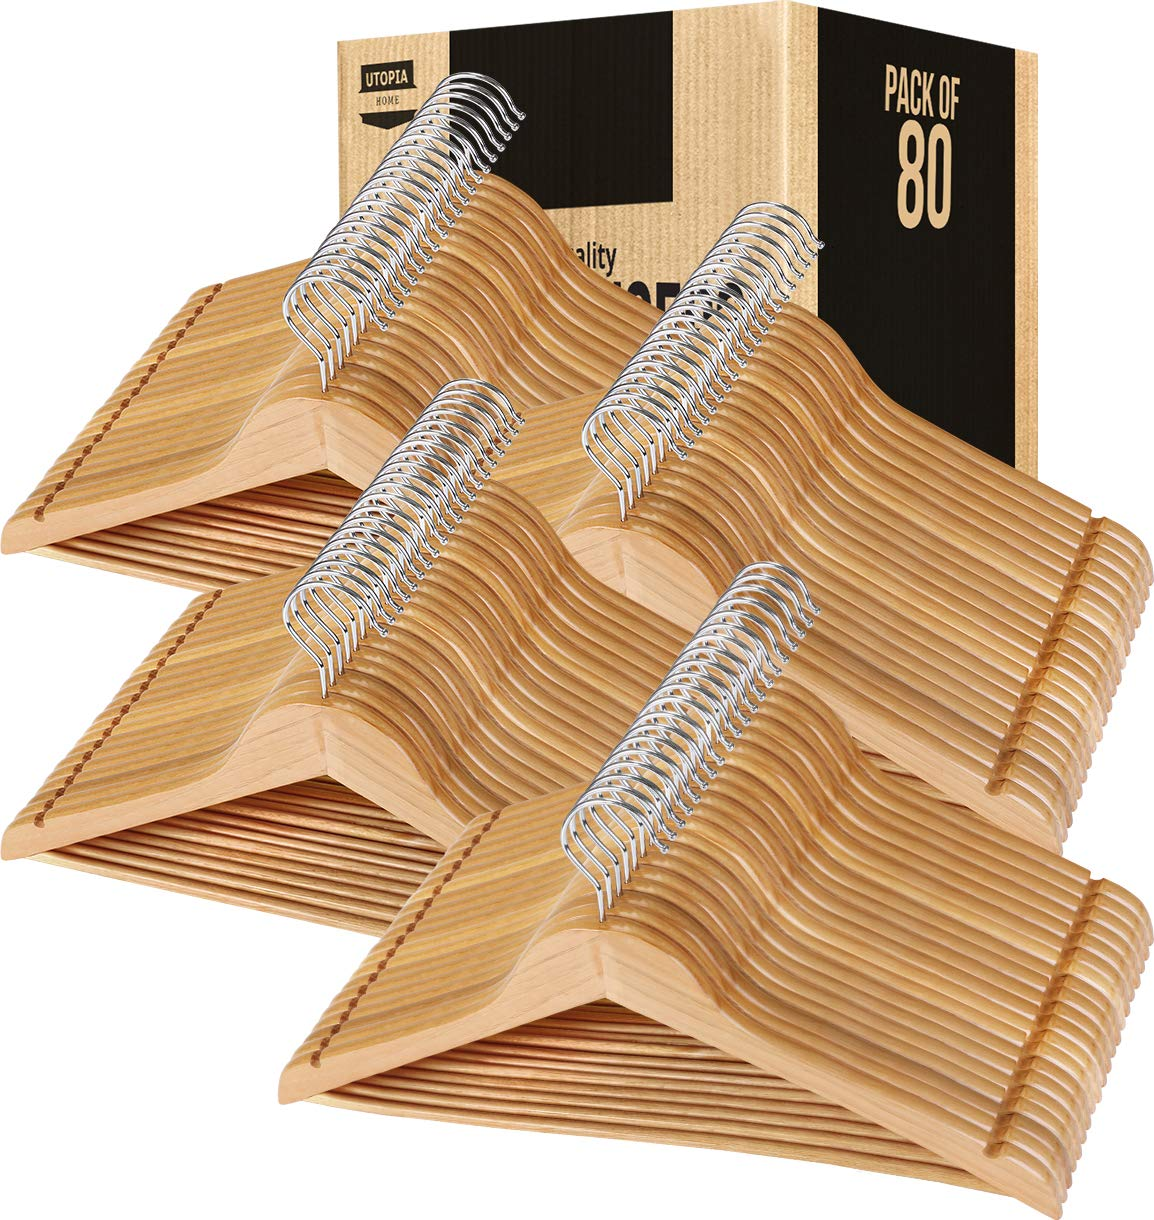 Utopia Home Solid Wooden Bulk Suit/Coat Hangers - Pack of 80 - Ideal for Suits, Coats, Jackets, Pants, Dresses - Natural Finish